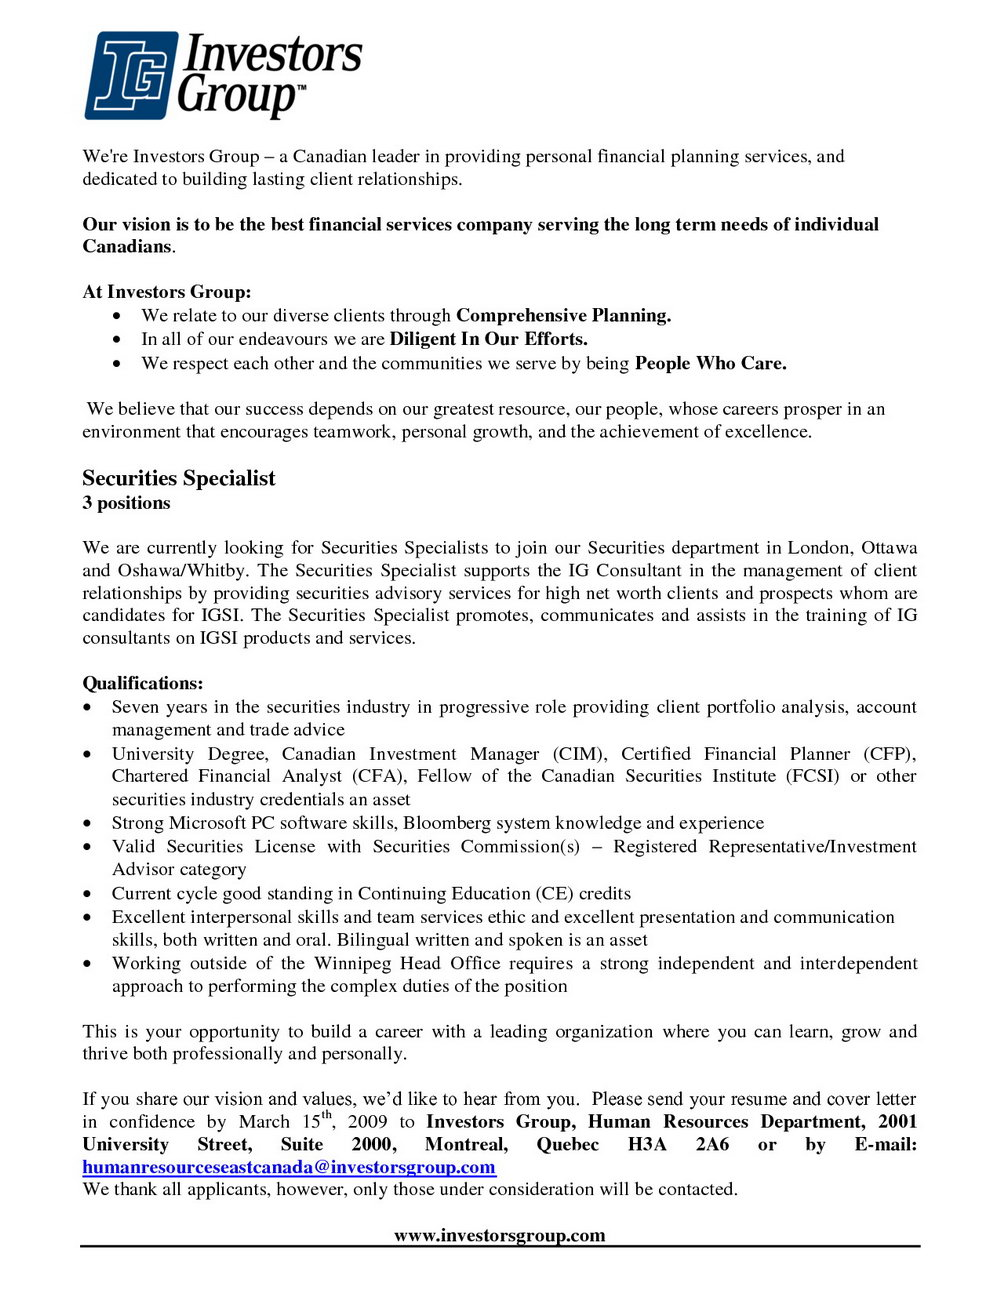 Job Advertisement Template